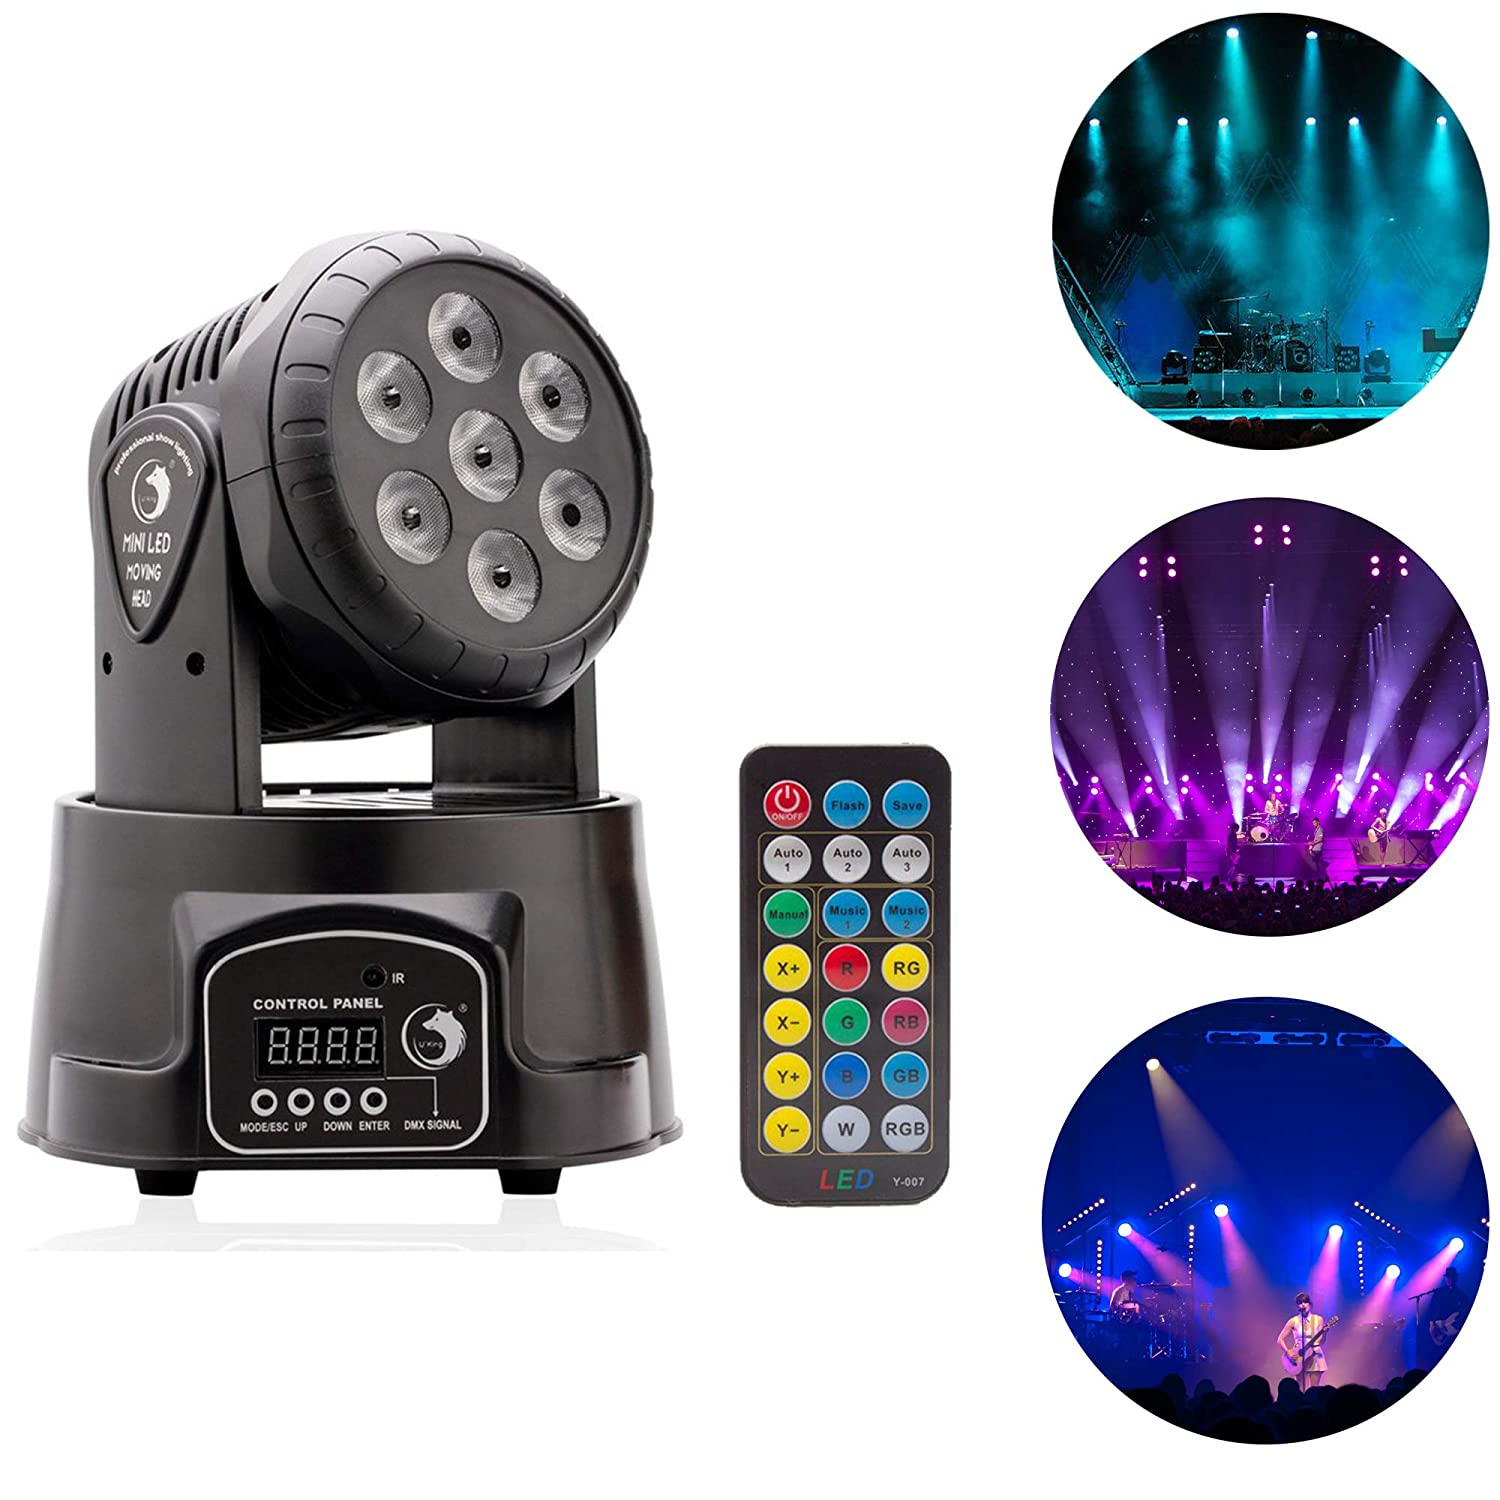 Top-Uking Moving Head Light DMX512 RGBW 7LED 70W Stage light with Remote, 4 Color with 5 Control Mode for DJ Disco Party Ballroom Christmas Halloween(7 LED)